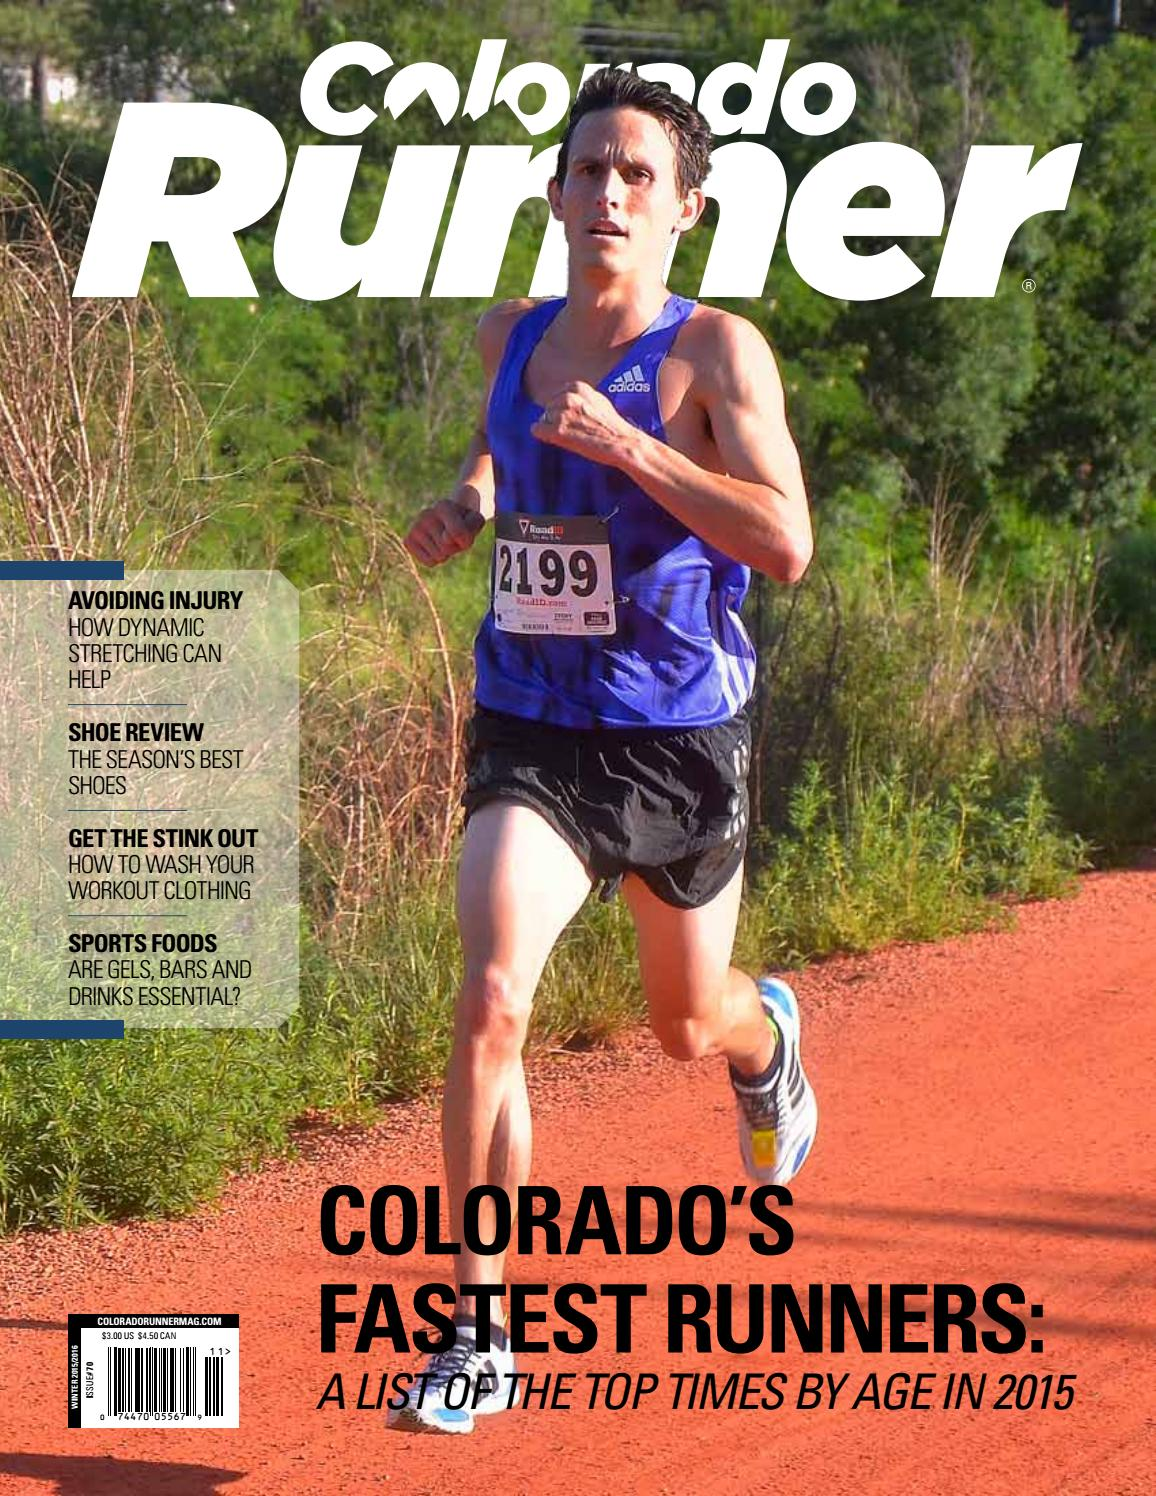 f1c3234a3 Colorado Runner - Issue 70  Winter 2015 2016 by Colorado Runner - issuu